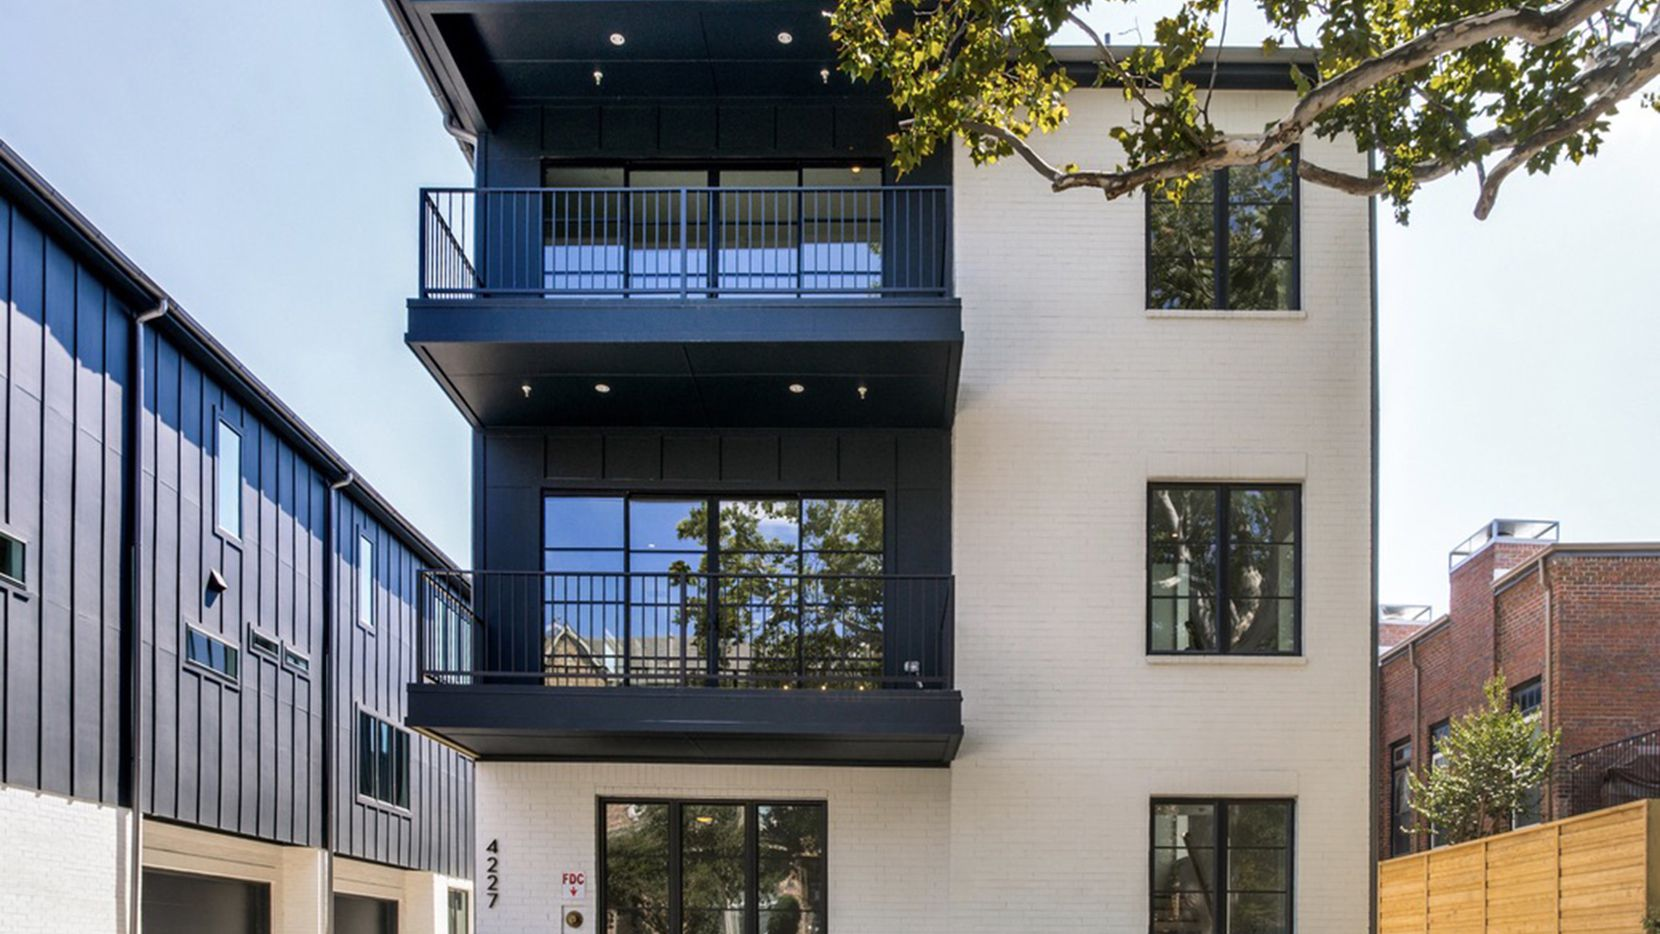 These two-bedroom units at the new Holland Townhomes development are priced from $625,000 to $699,000.